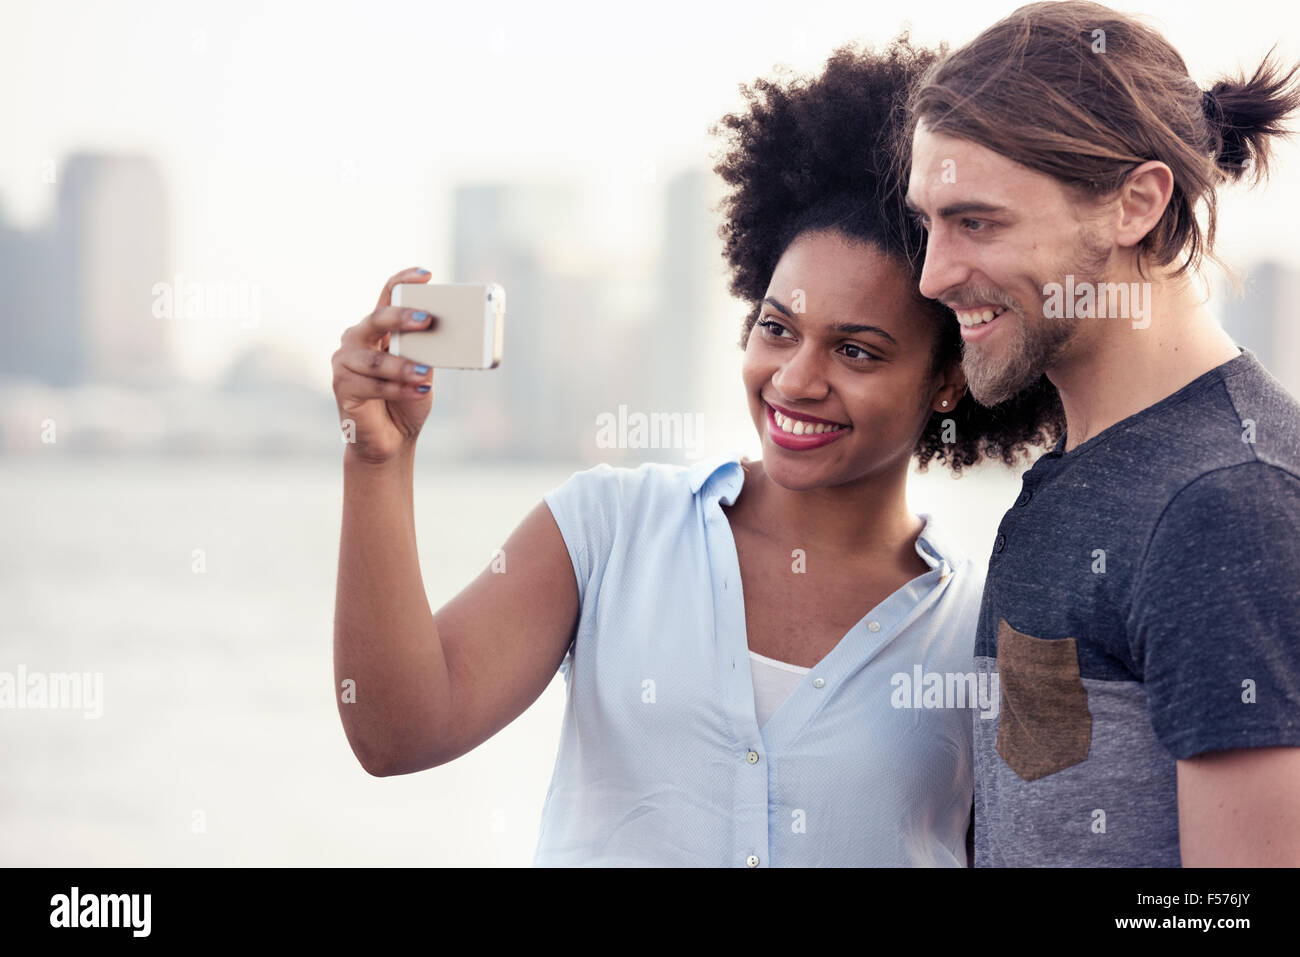 A couple, man and woman taking a selfie by the waterfront in a city - Stock Image